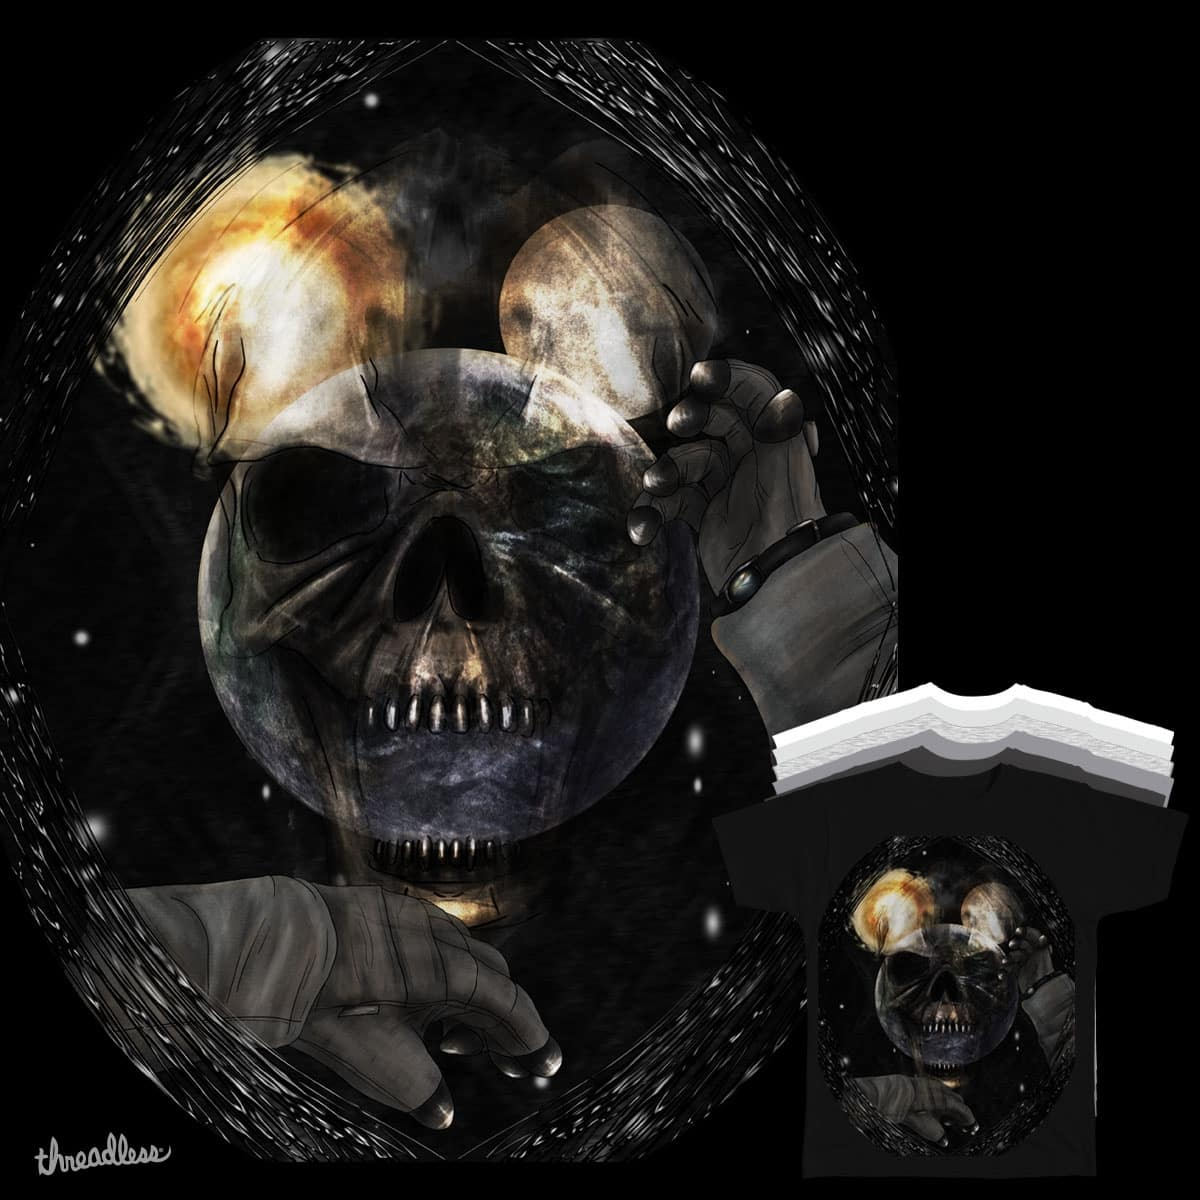 Omen in Space by OliverDemers and goliath72 on Threadless